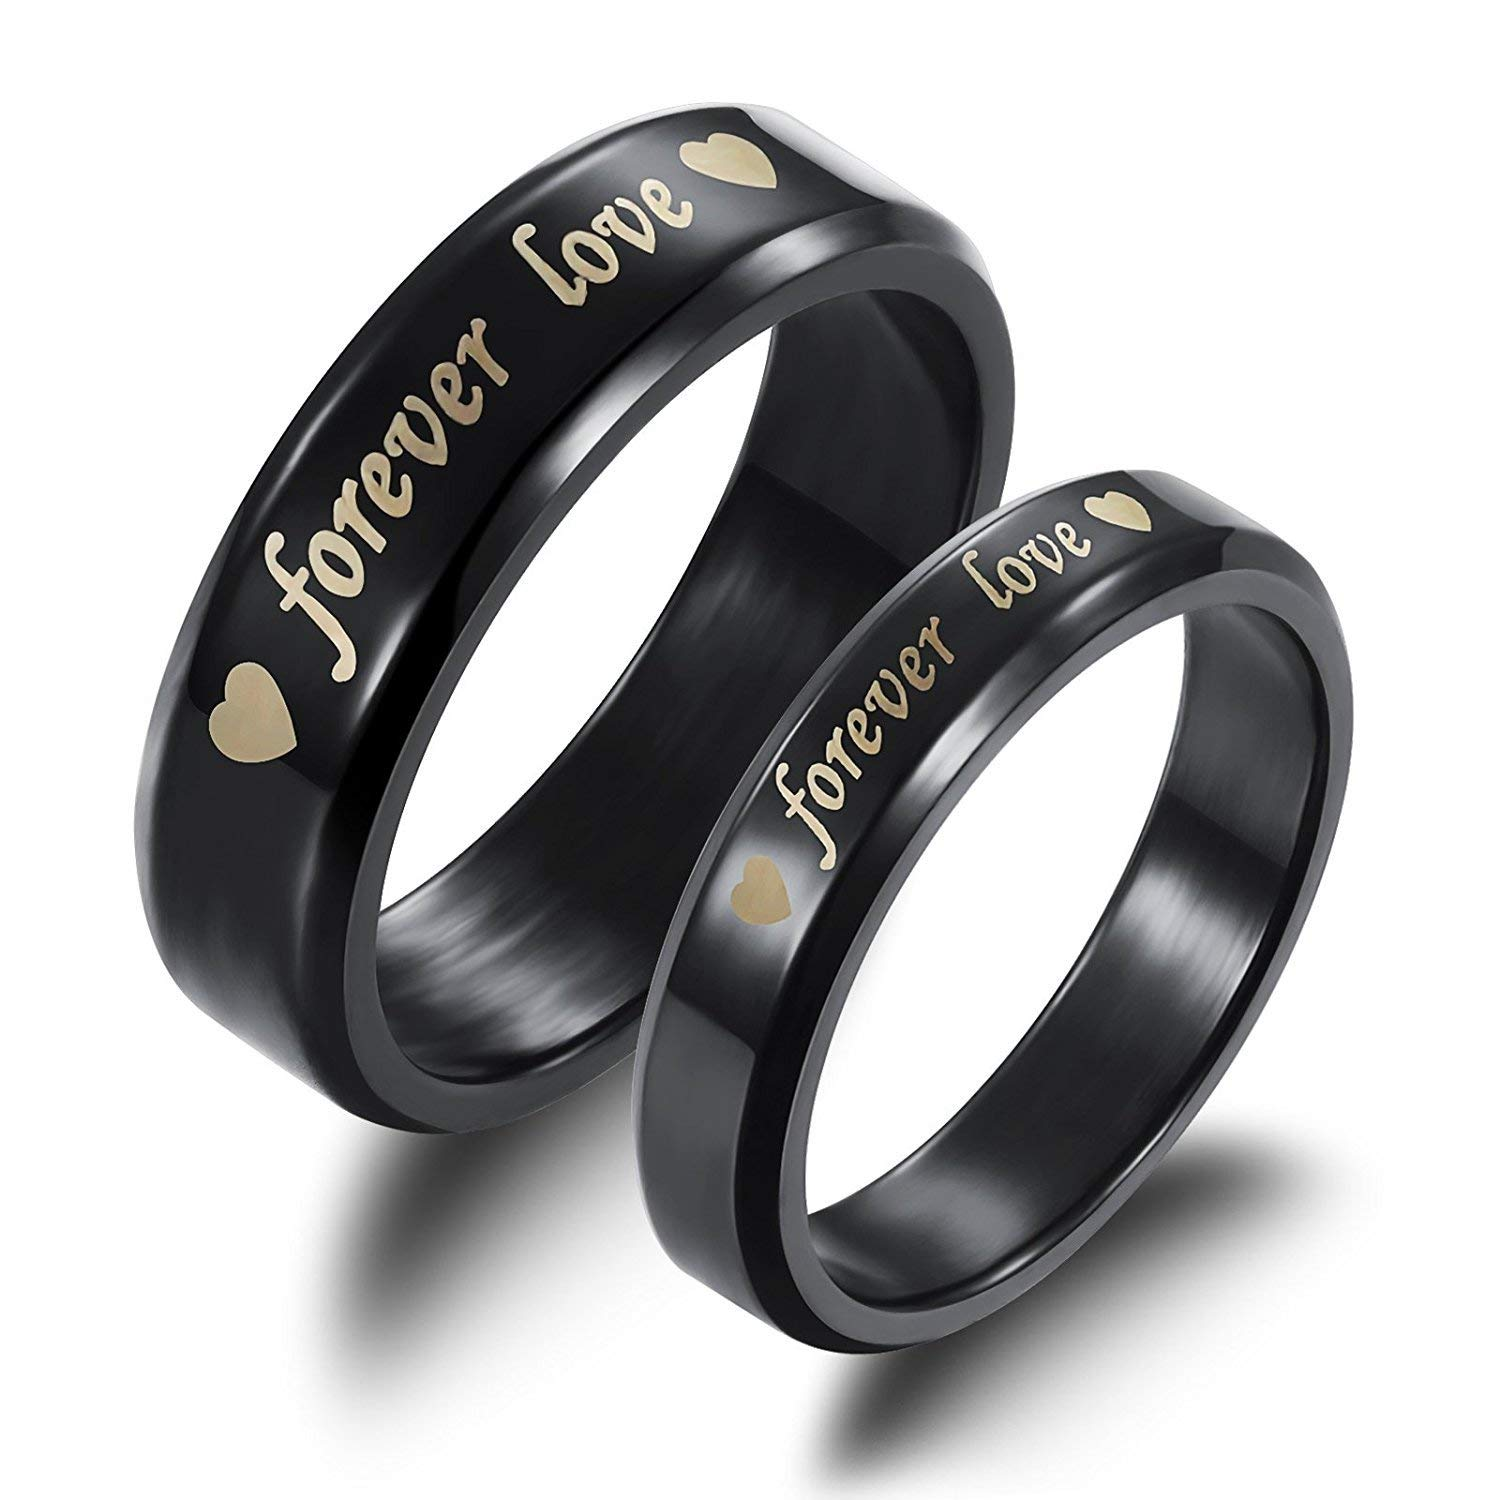 8097db9e8f Get Quotations · JAJAFOOK 2PCS/PACK Stainless Steel Black Forever Love  Double Heart Couples Promise Ring Romantic Couples